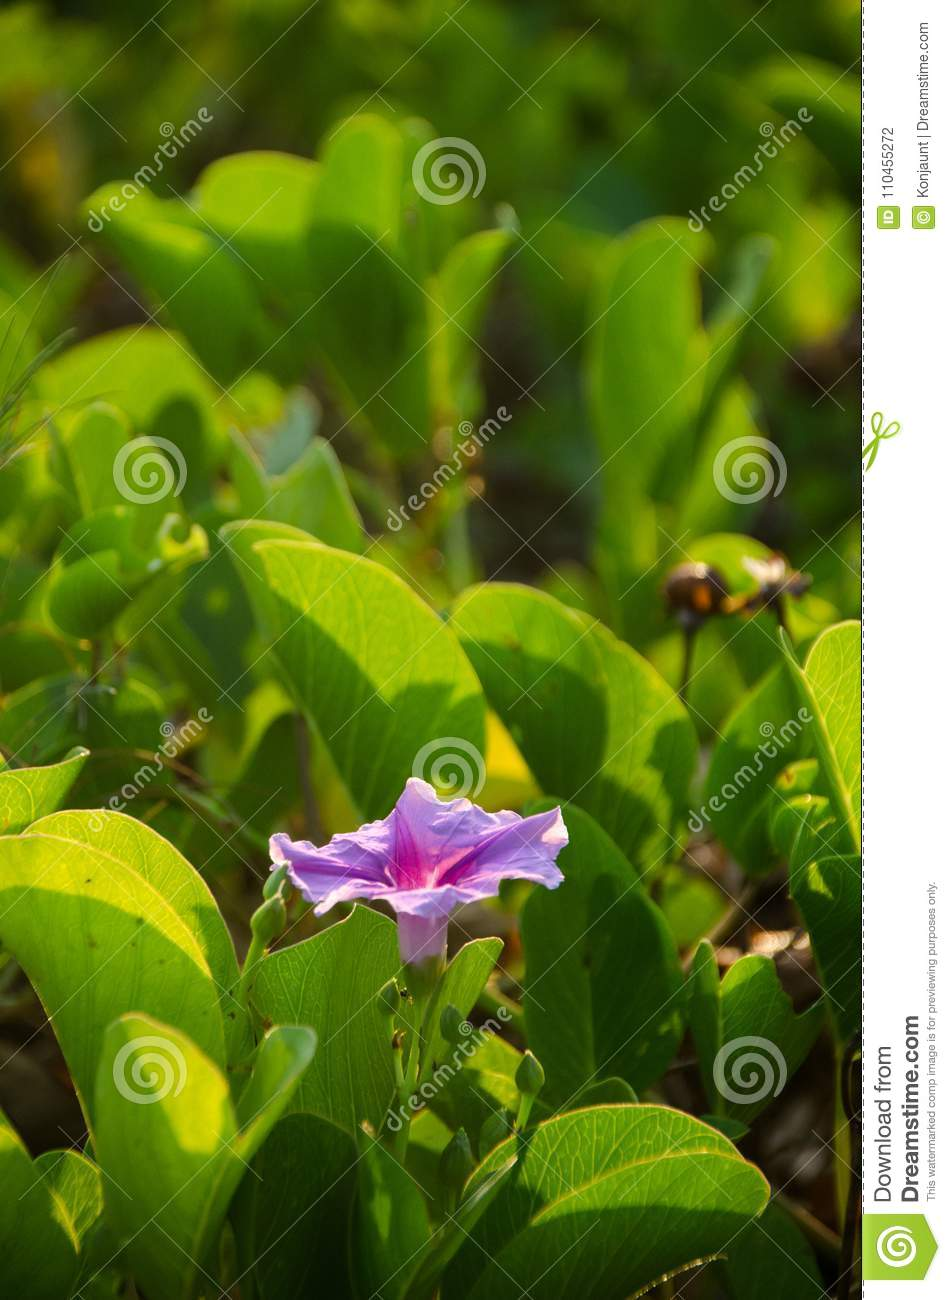 Ipomoea pes-caprae, Green Leafs Goat`s Foot Creeper on the beach